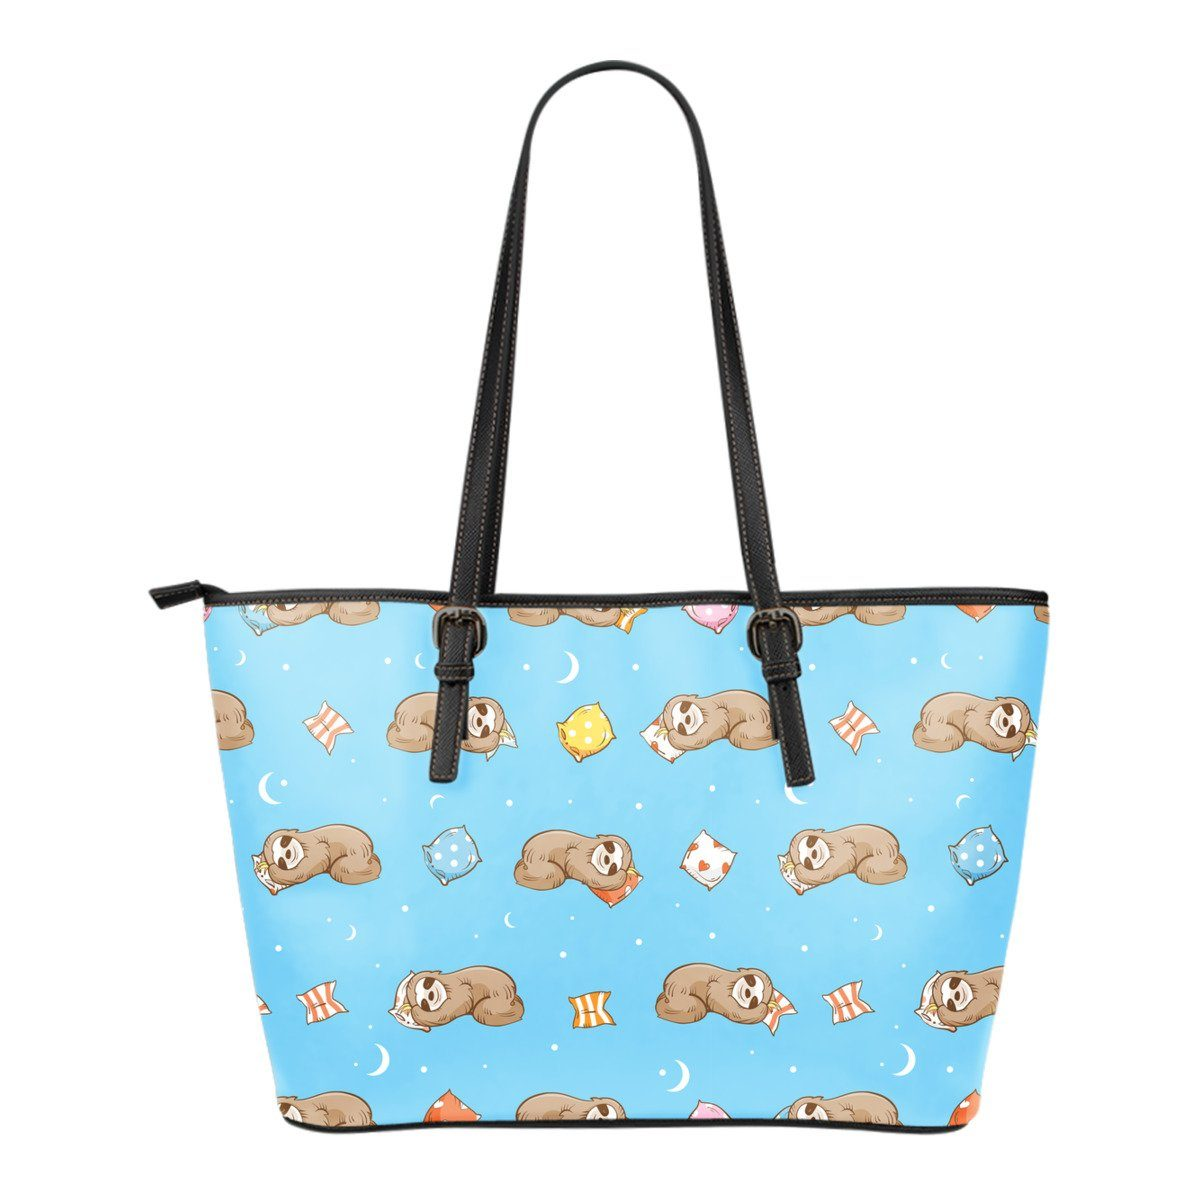 438f6cef143d Sloth Bag-Cute Sloth Gifts Leather Tote Bag for Sloth Lovers ...